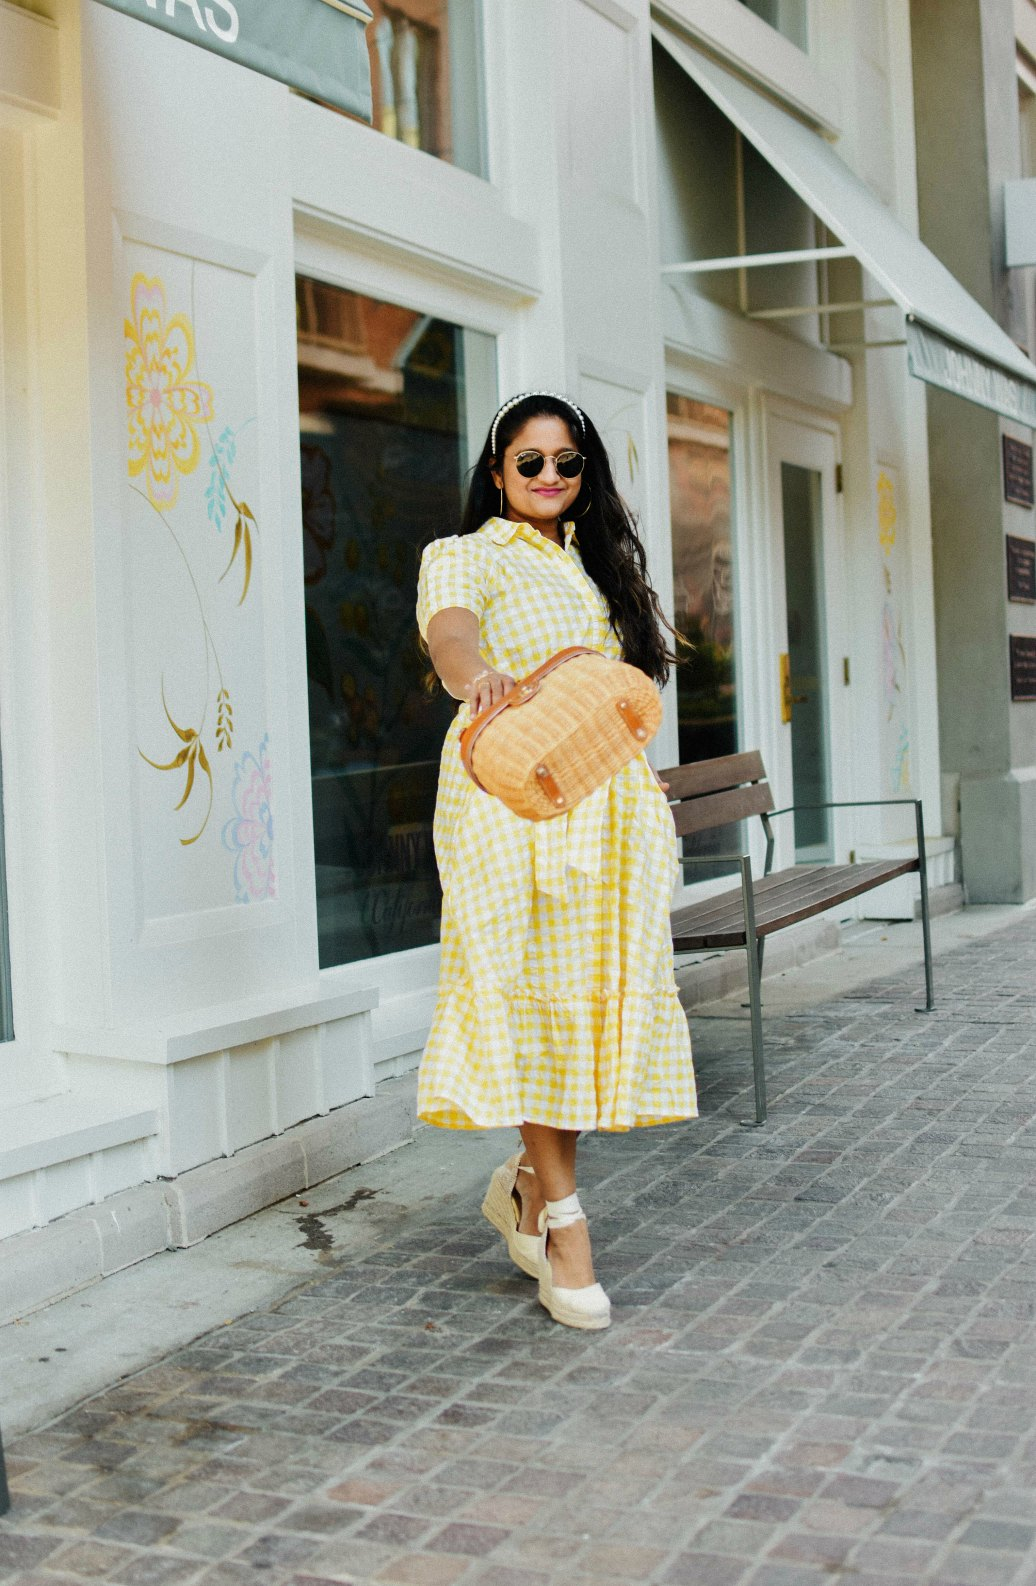 Wearing Wearing Lisa Marie Fernandez for Target Gingham Puff Sleeve Shirtdress, Castaner Carina Wedges in Cream, J.McLaughlin Ava wicker bag, pearl Headband 7 | Lisa Marie Fernandez by popular Maryland fashion blog, Dreaming Loud: image of a woman a Target Lisa Marie Fernandez yellow gingham dress, Castañer cream Carina 80 ankle tie wedge sandals, Amazon LXBSIYI Huge Gold Hoop Earrings, Olive and Piper Madison Pearl Headband, and holding a J. McLaughlin Skip to the end of the images gallery Skip to the beginning of the images gallery Ava Wicker Bag.